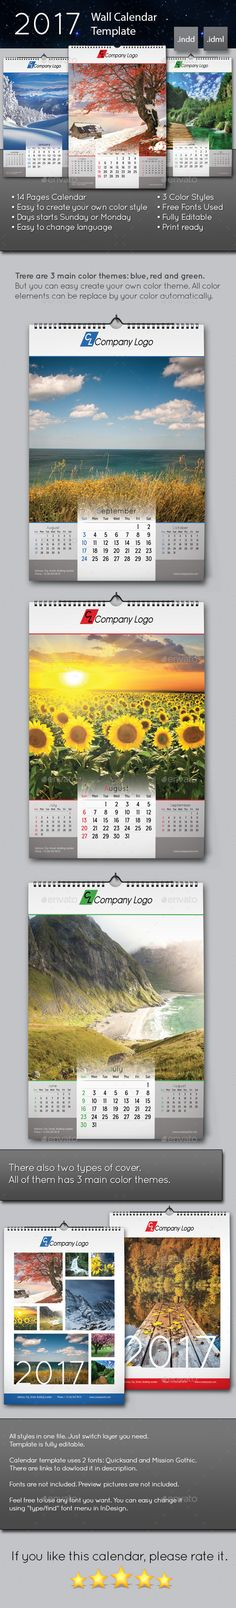 Desk Calendar   More Best Desks Desk Calendars And Calendar